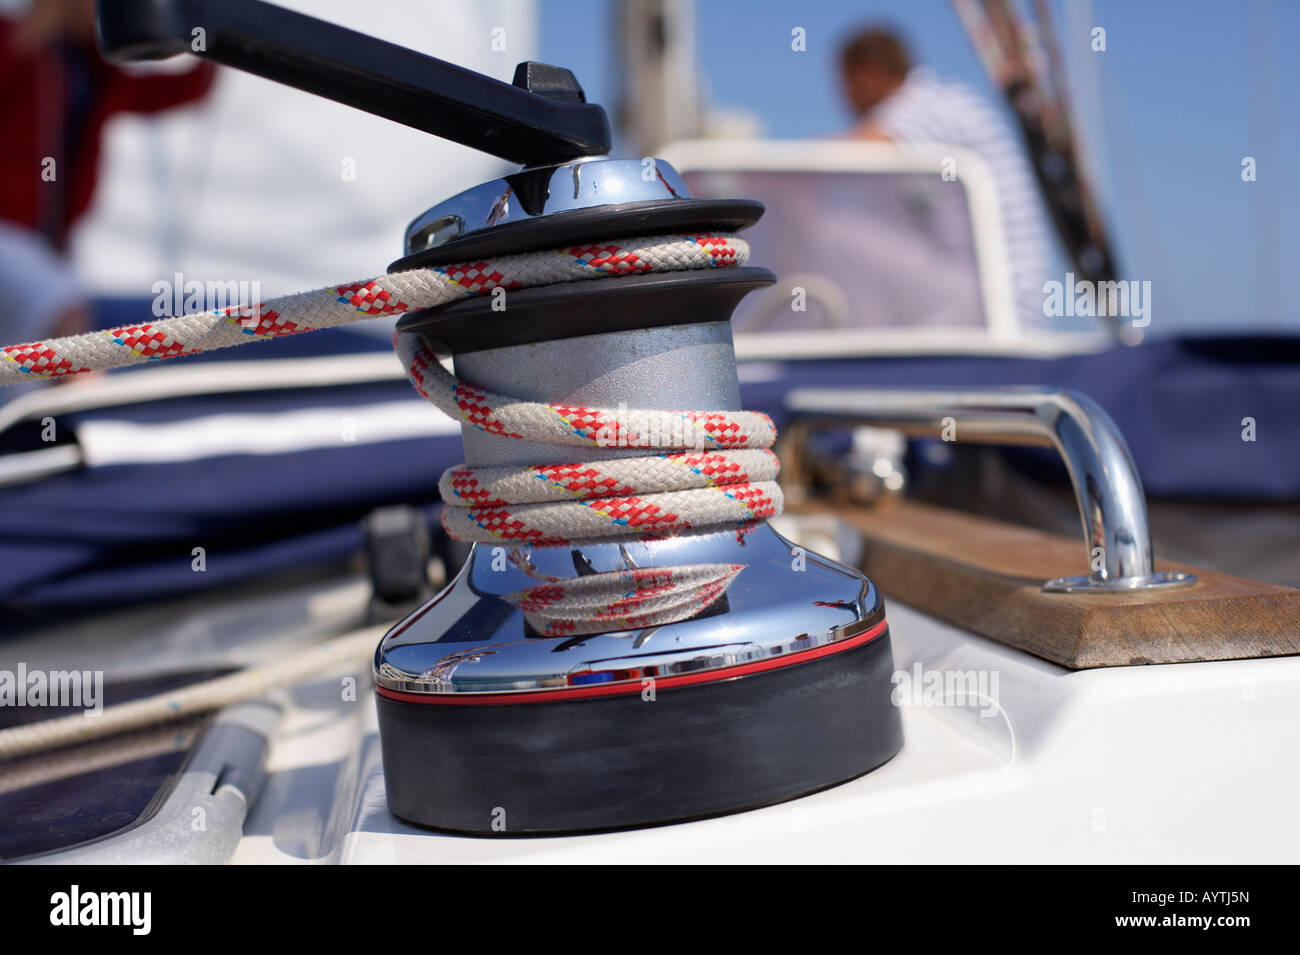 Winch on a Boat, Close-up - Stock Image